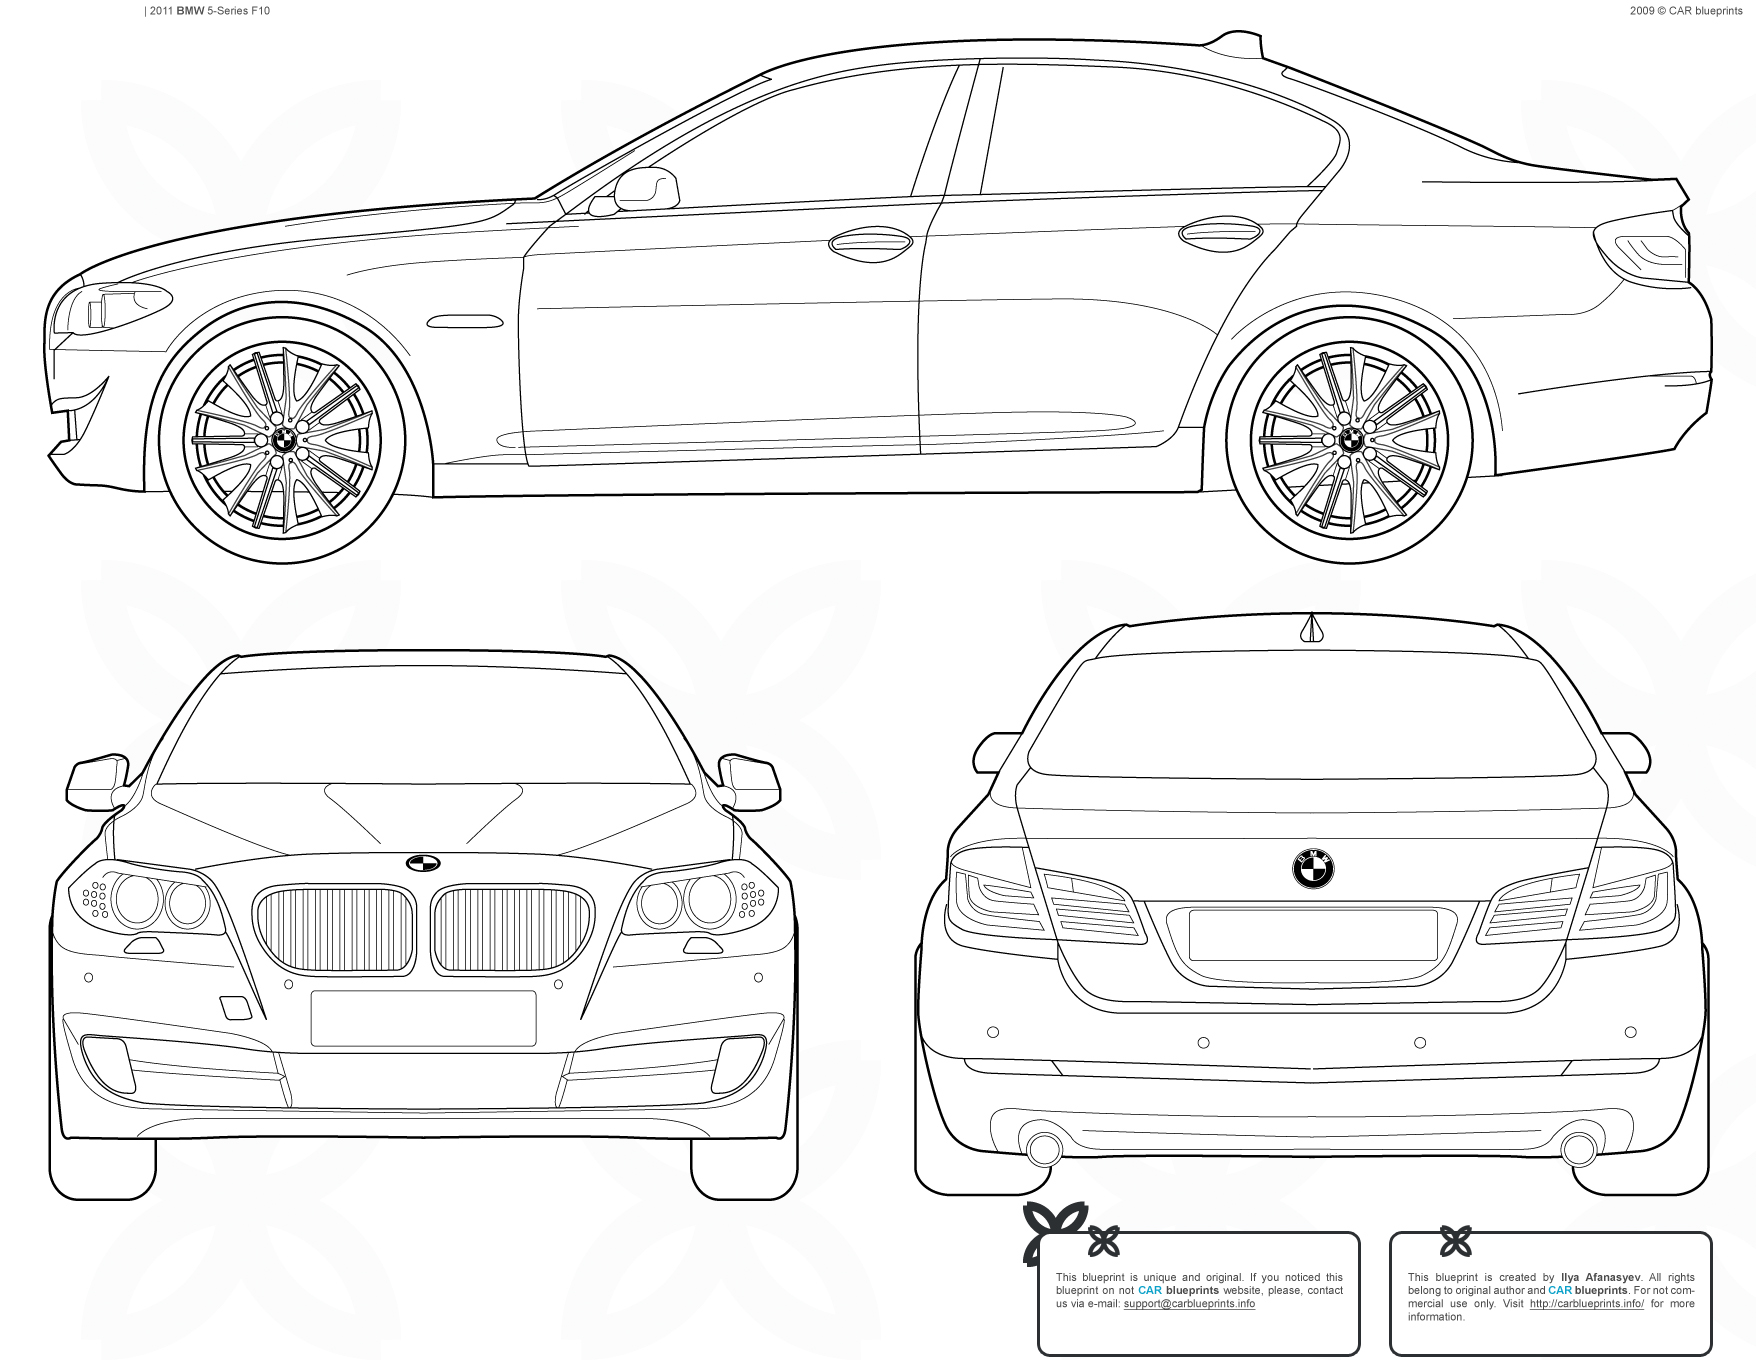 Bmw 5 Series F10 Sedan Blueprints Free